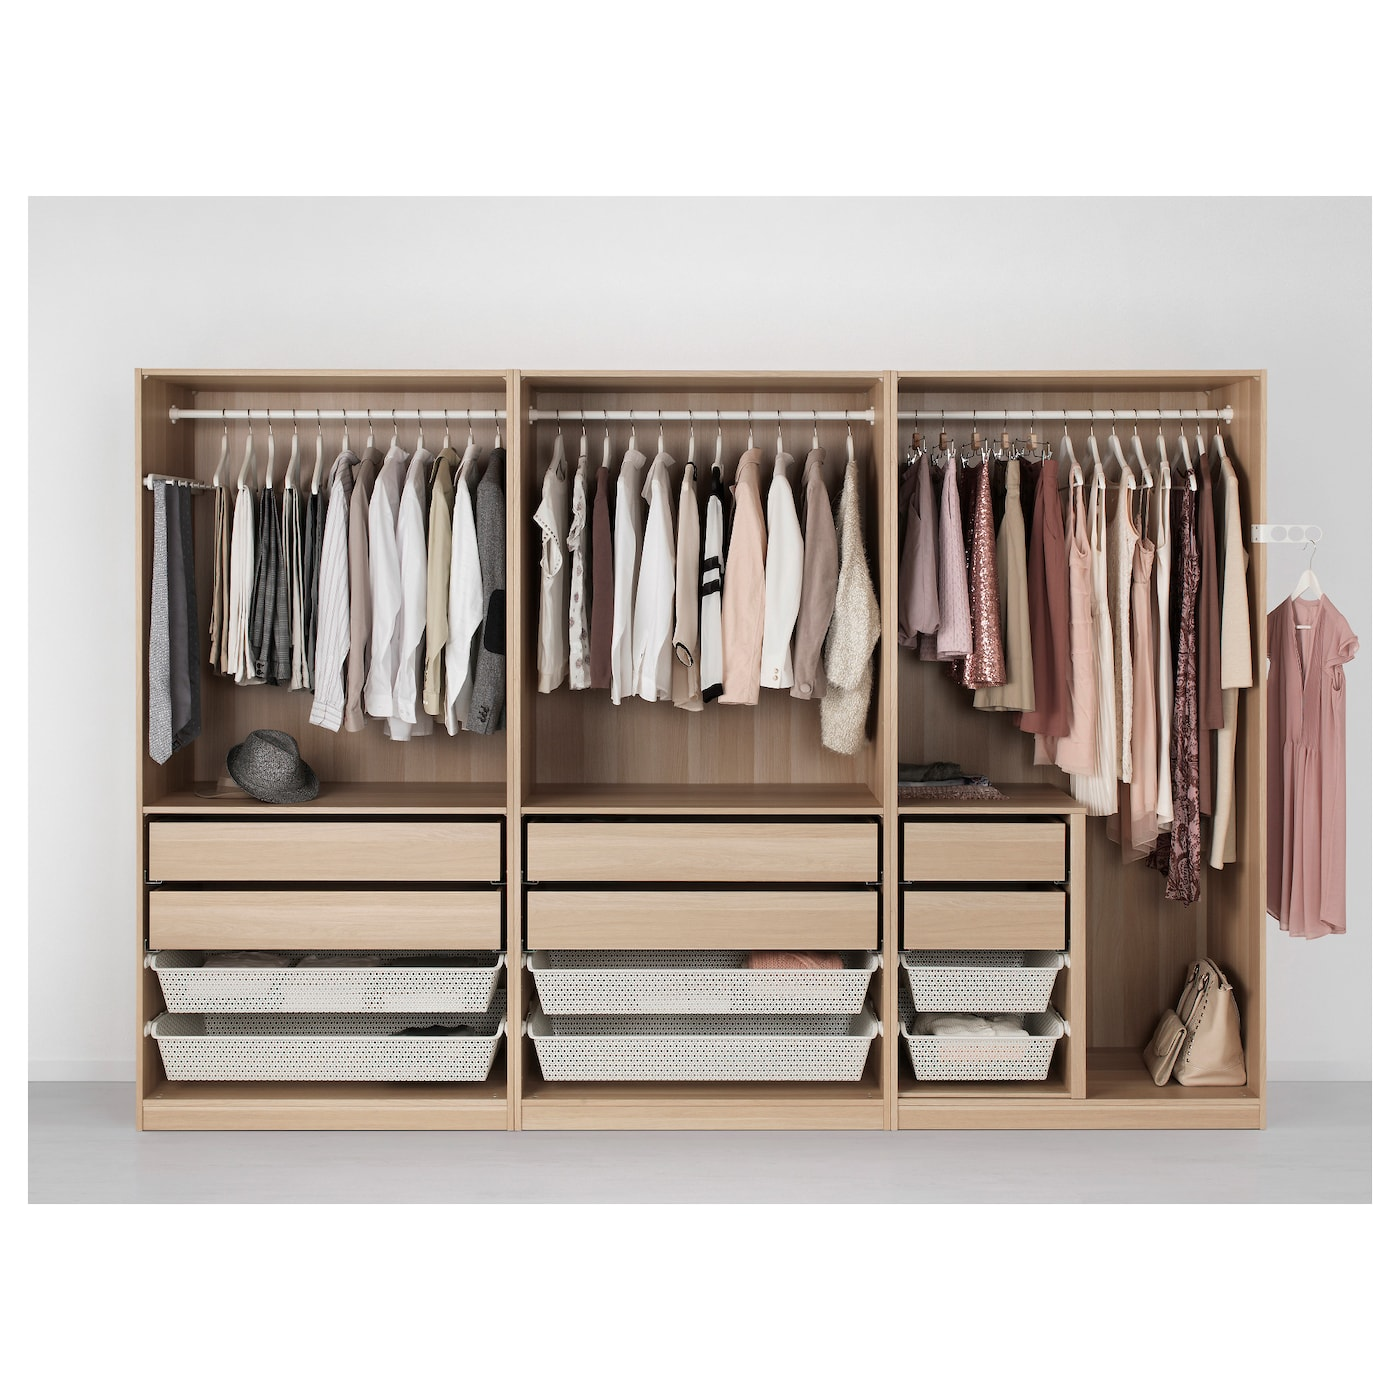 Pax wardrobe white stained oak effect nexus vikedal 300 x for Ikea cabina armadio pax